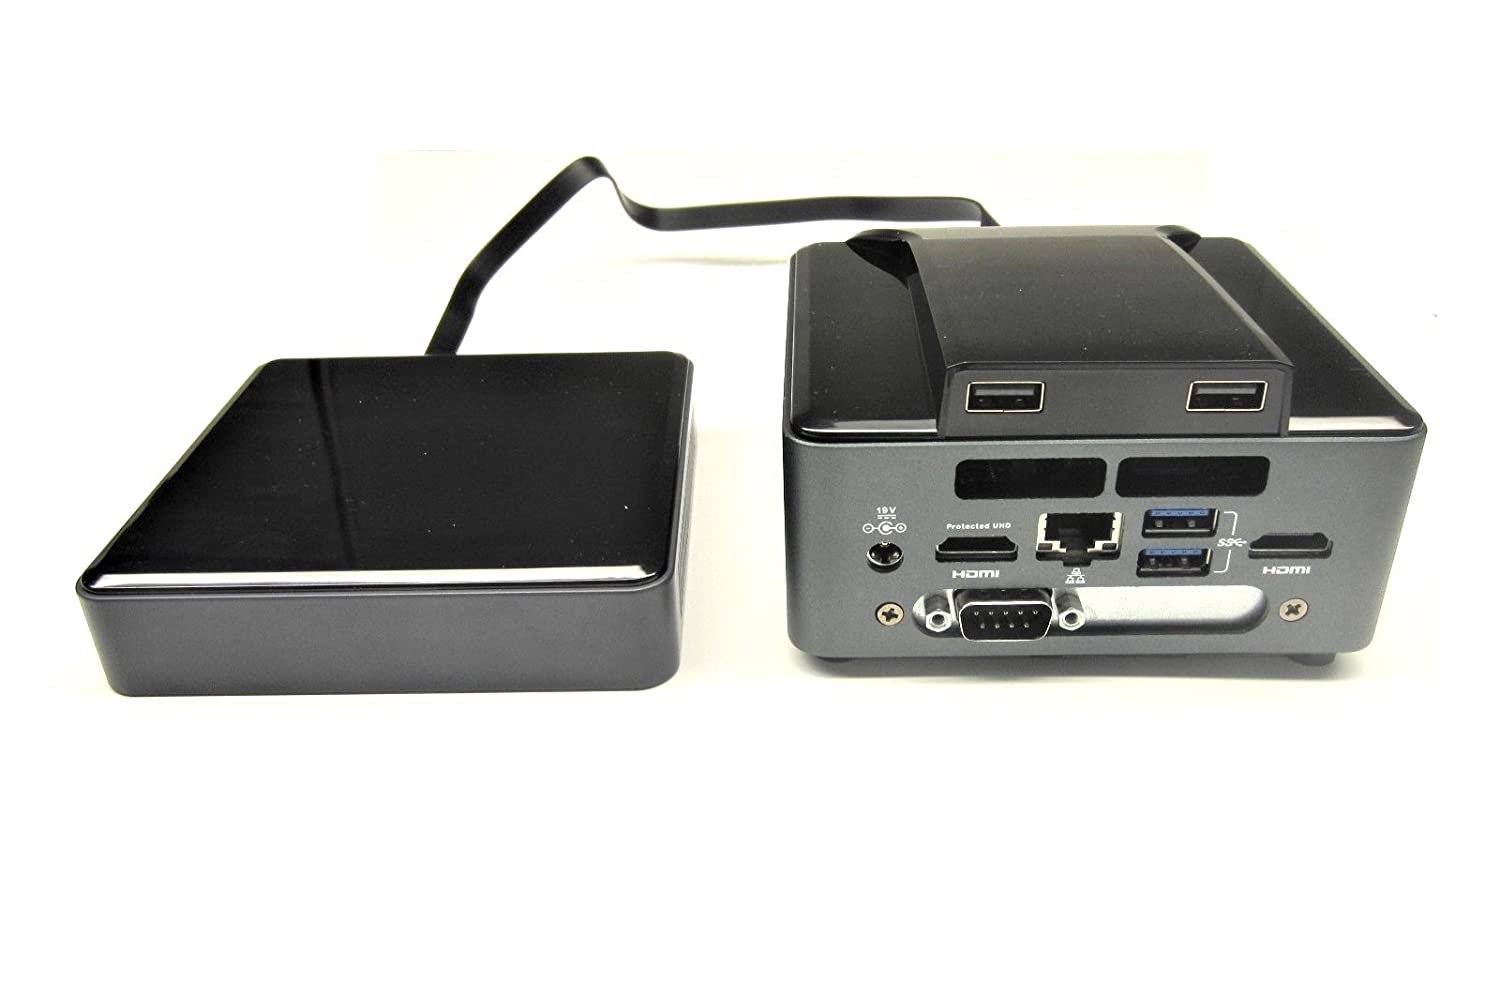 Micro SATA Cables Stack-Able Memory Enclosure Base Unit for 7th Gen Intel NUC